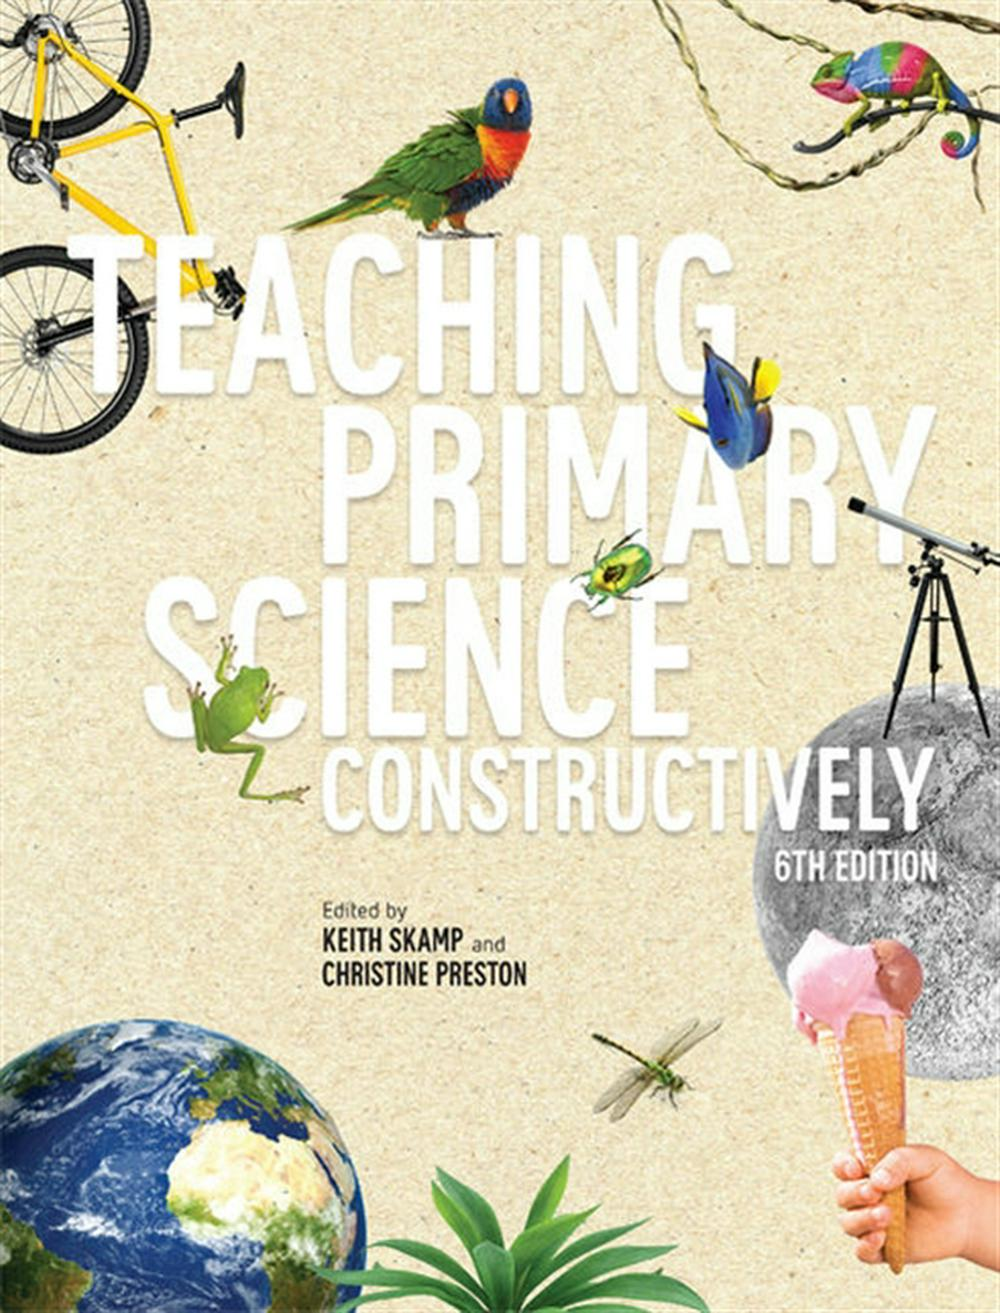 Teaching Primary Science Constructively with Student Resource Access 12 Months by Keith Skamp,Christine Preston, ISBN: 9780170379717